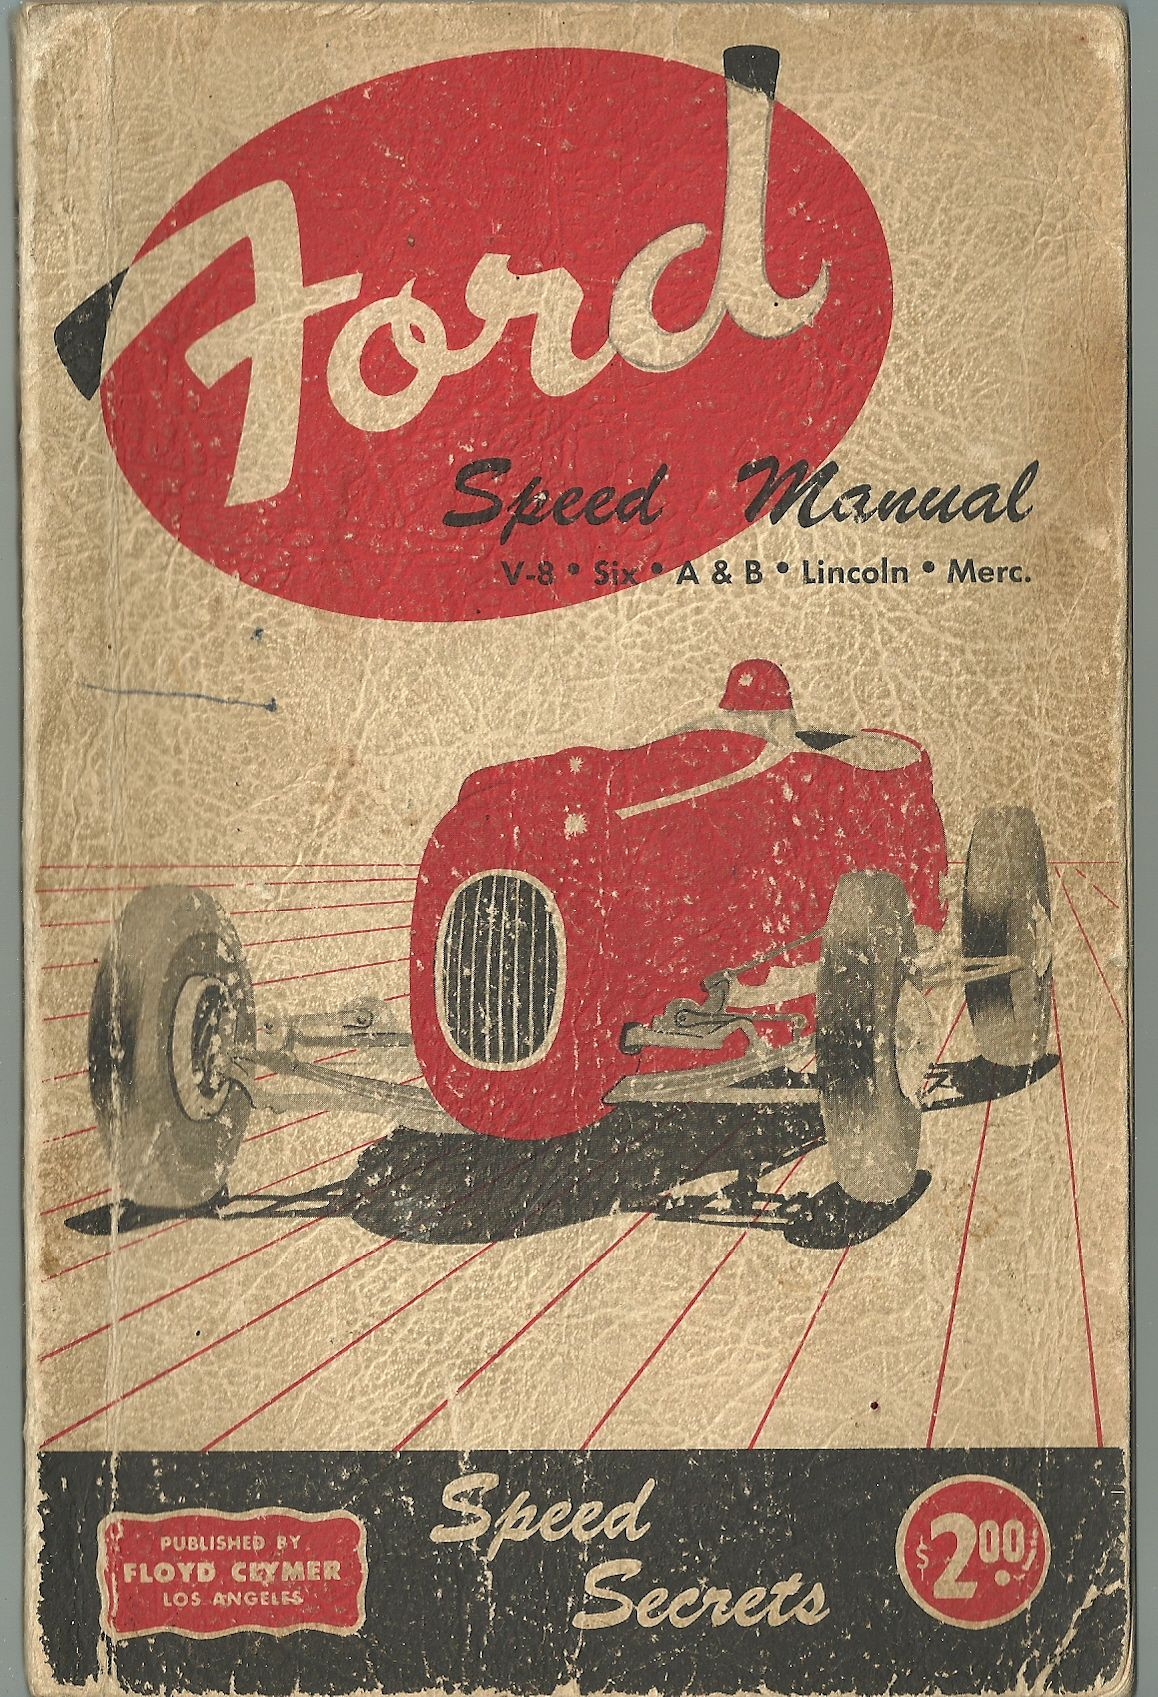 "Ford Speed Manual:  V-8, Six, A&B, Lincoln, Mercury, Fisher, Fred W. ""Bill"""